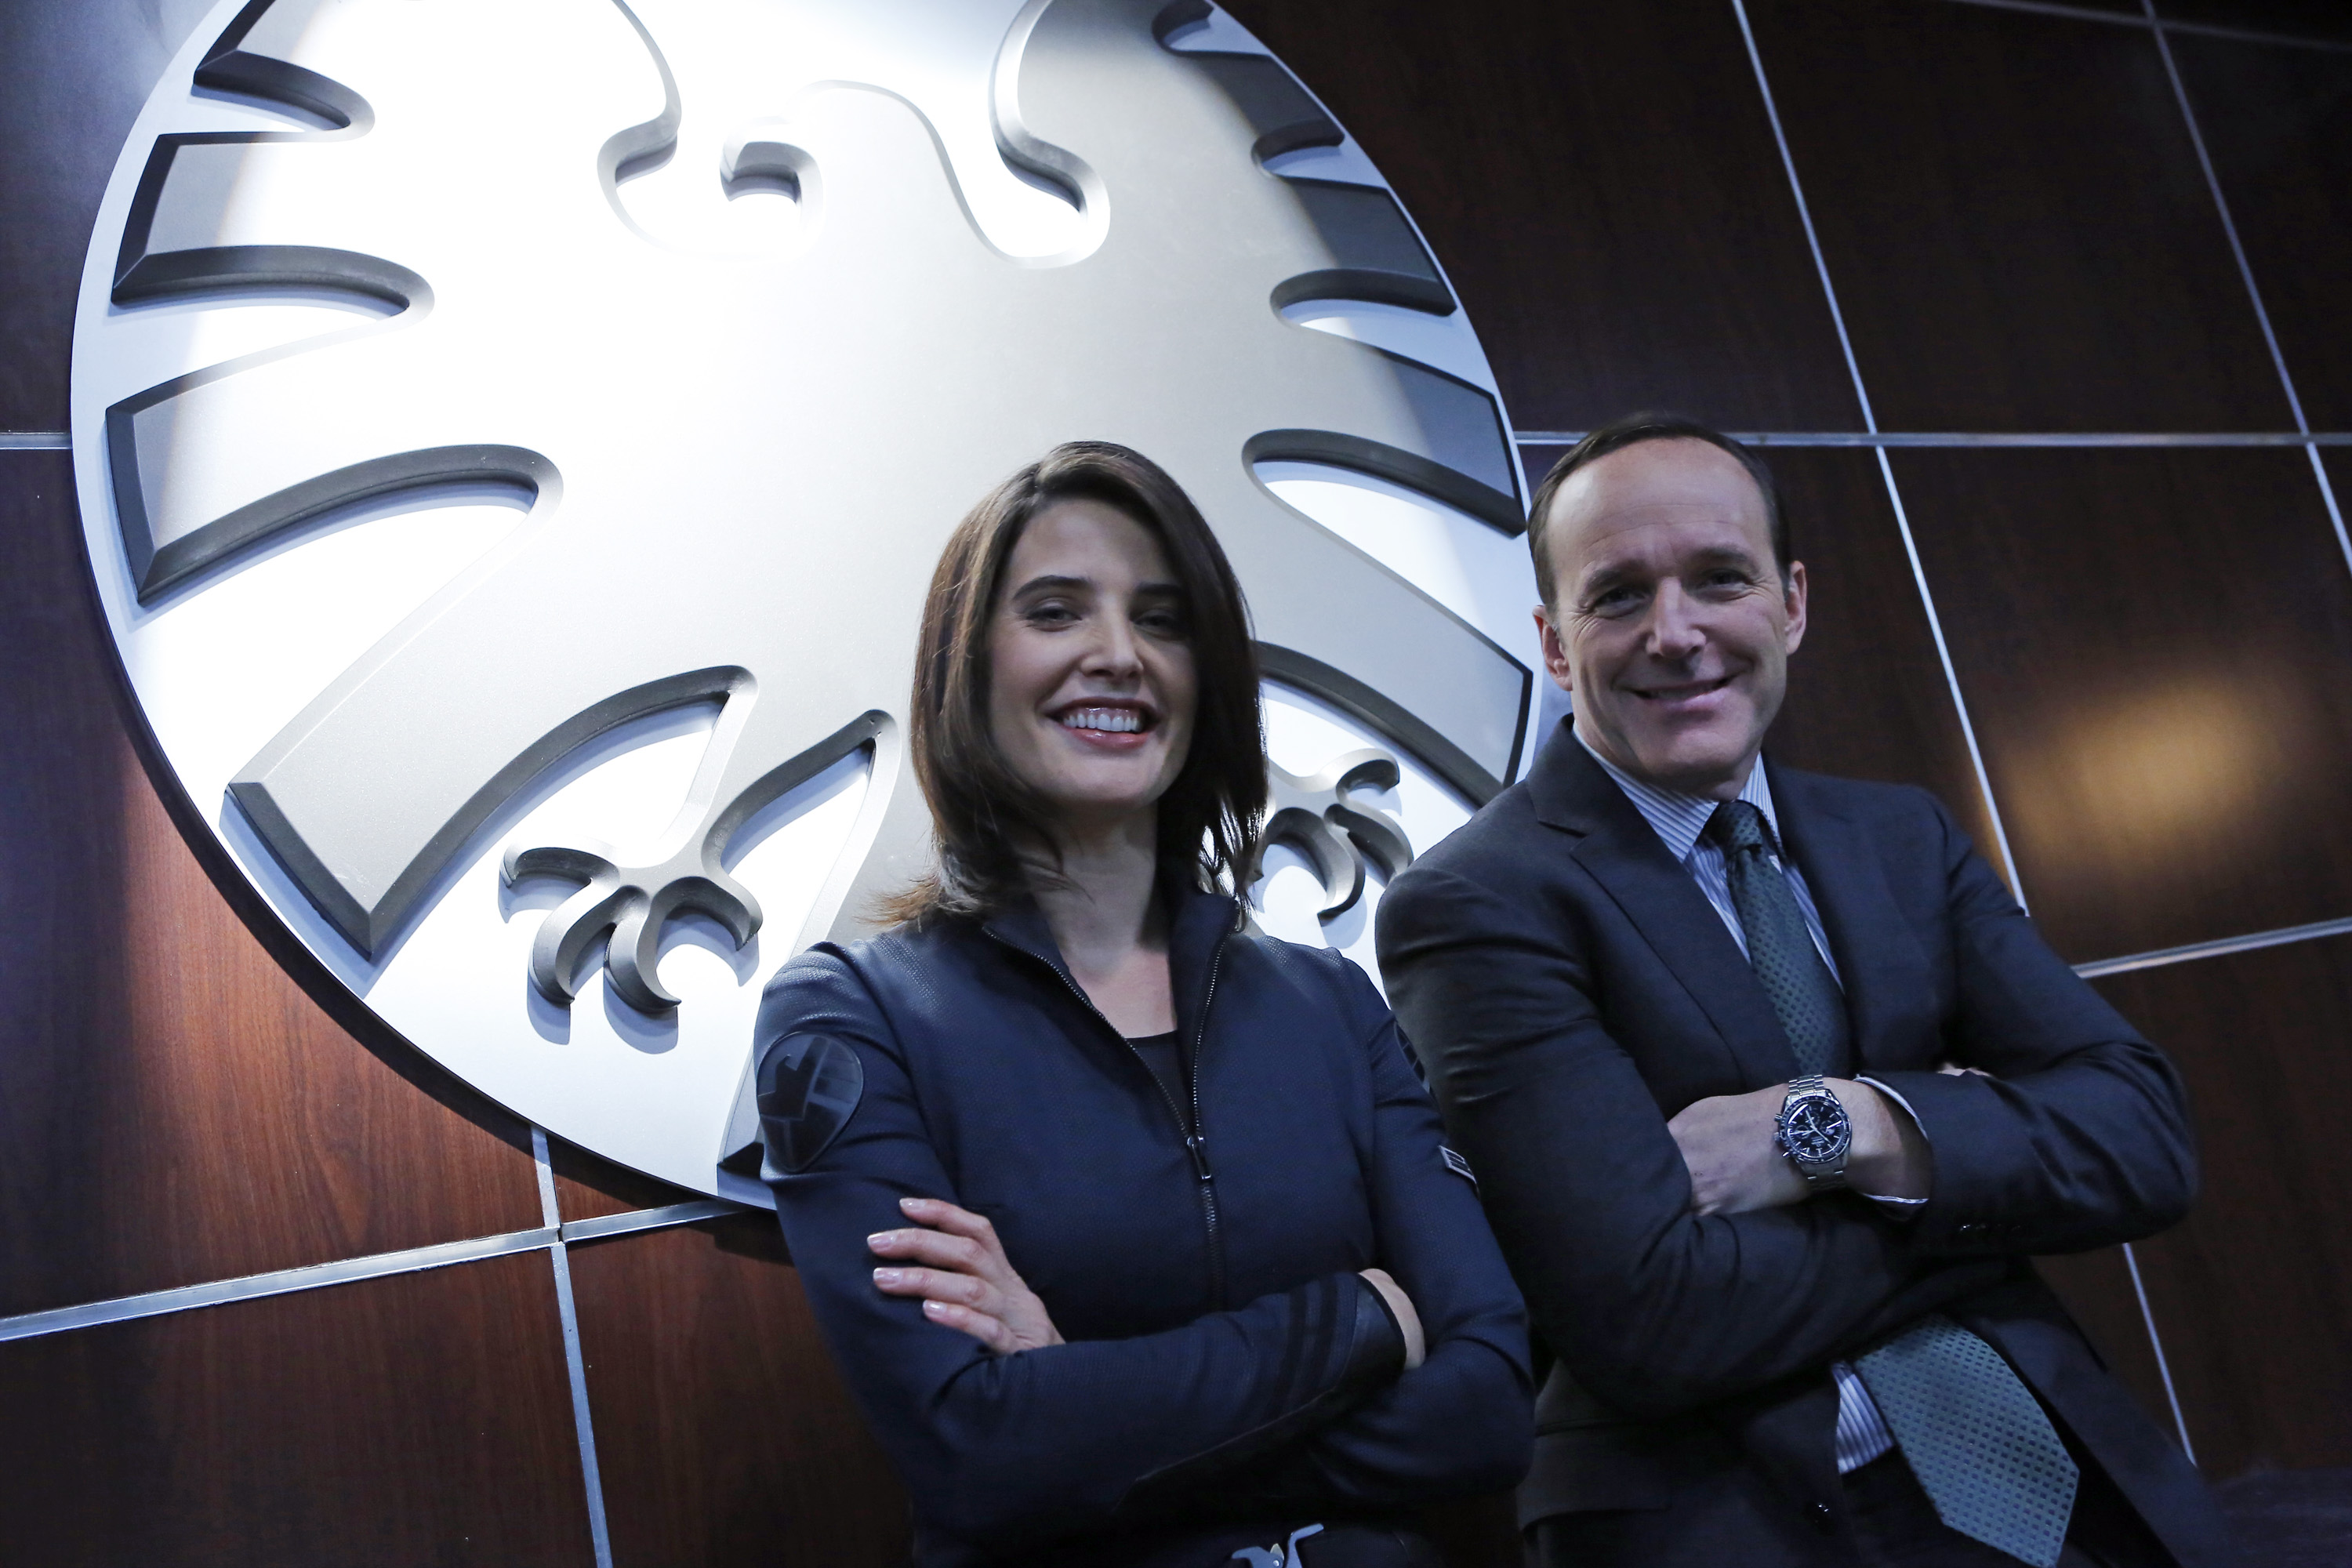 AGENTS OF S.H.I.E.L.D. Pilot Images. Marvel's AGENTS OF SHIELD ...